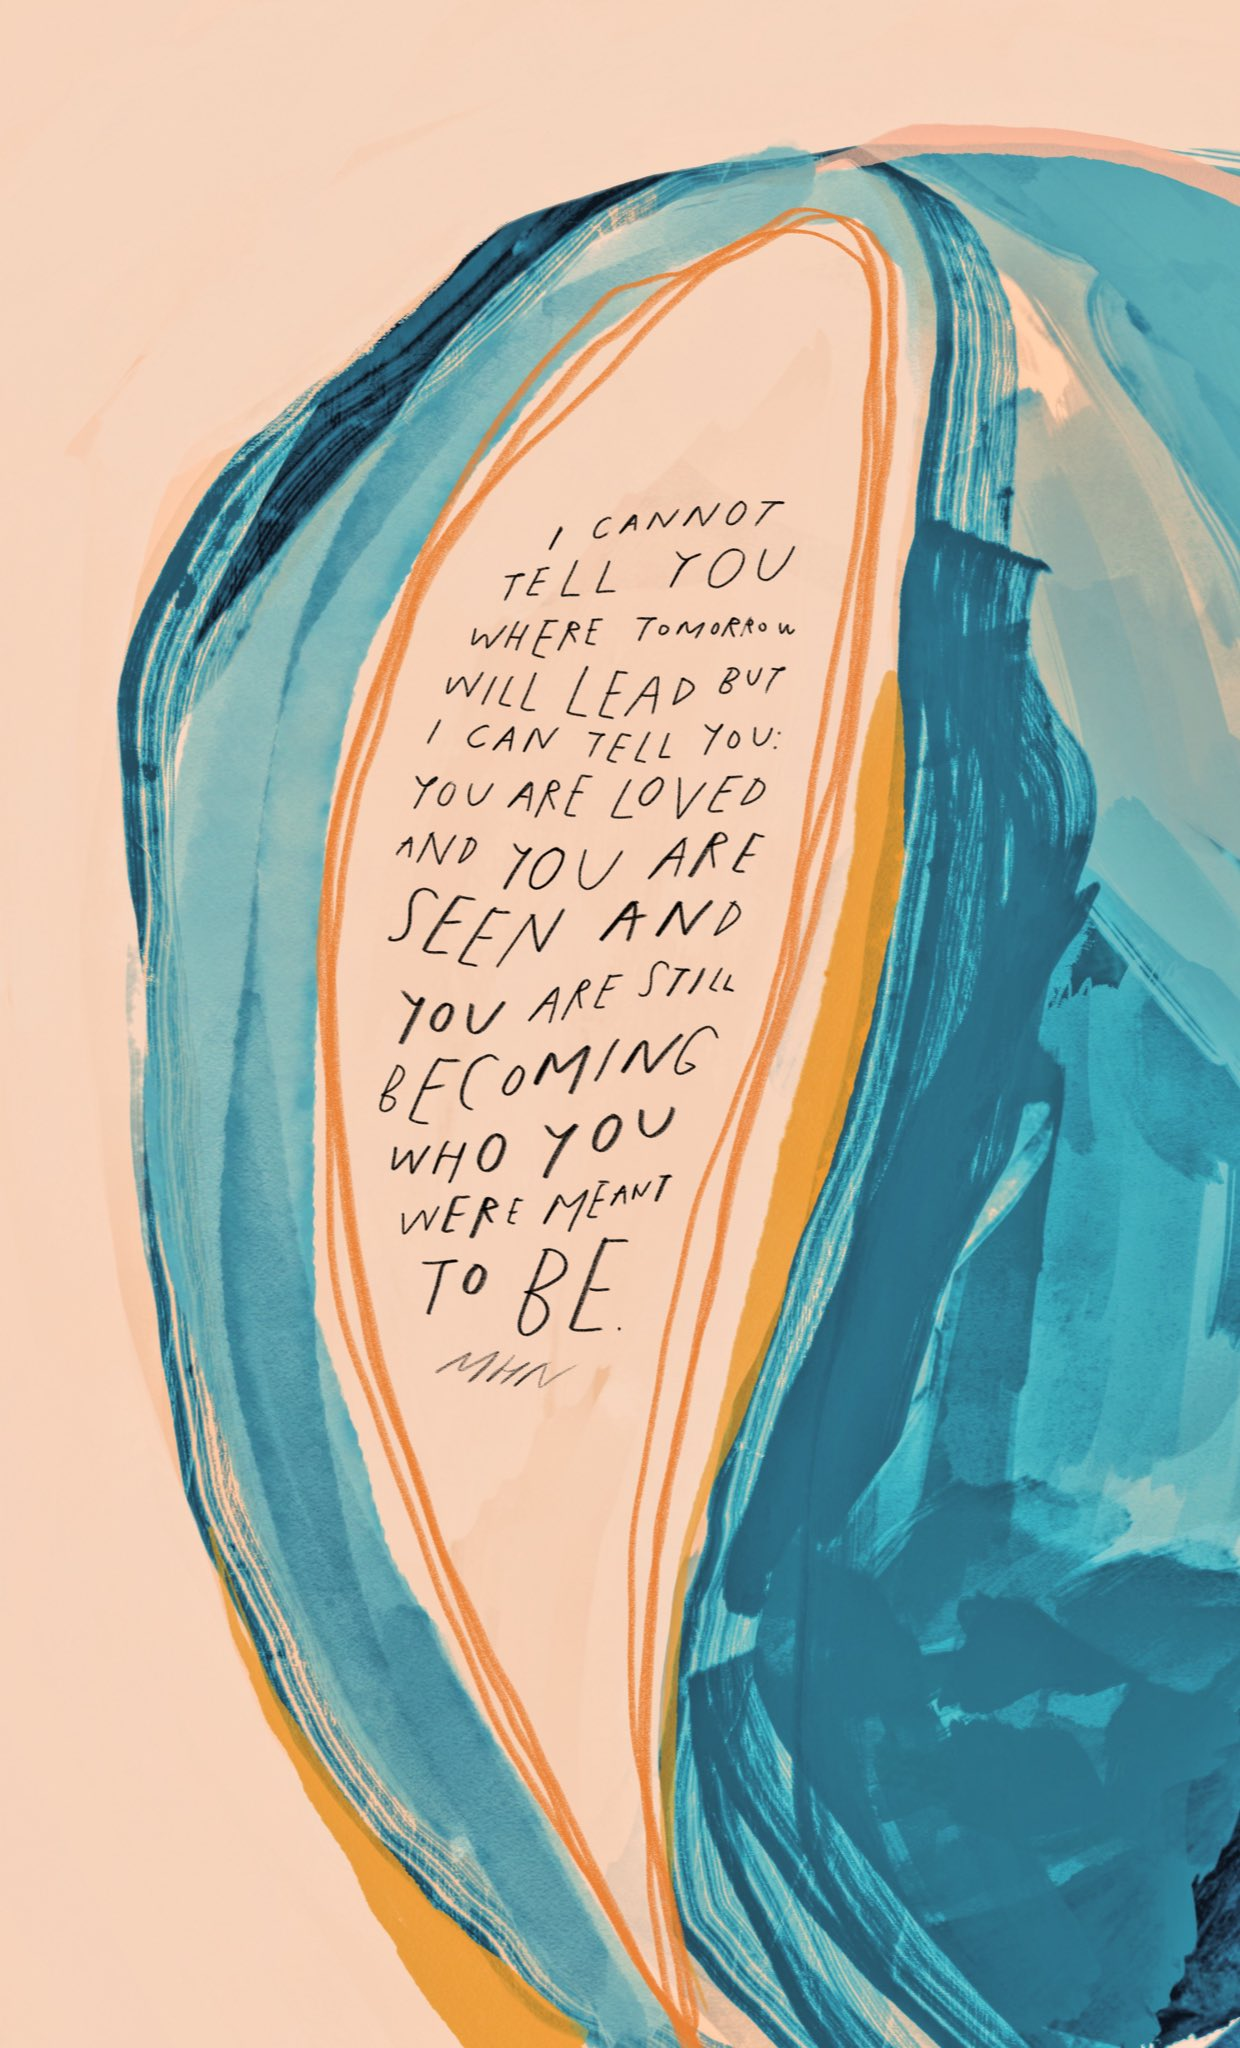 Morgan Harper Nichols art  You are loved and seen and becoming who you were meant to be